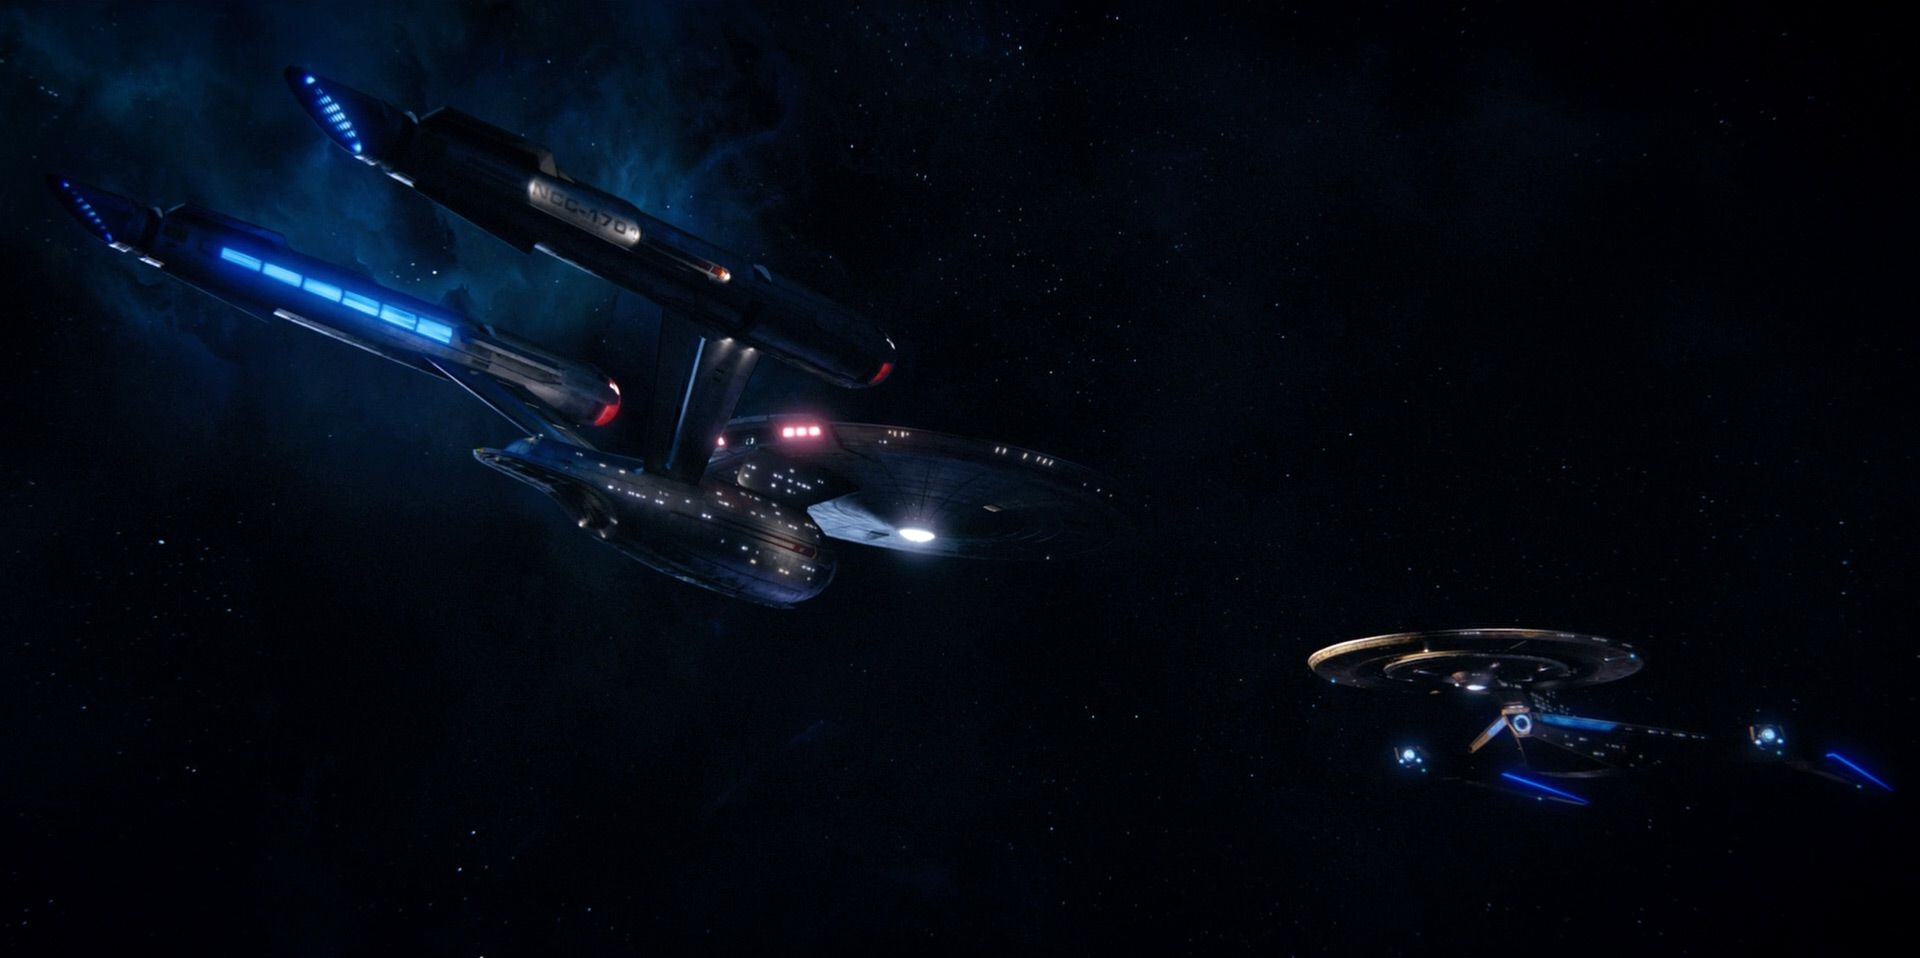 Review Star Trek Discovery Season 1 On Blu Ray Trekcore Blog Star Trek Uss Discovery Trek